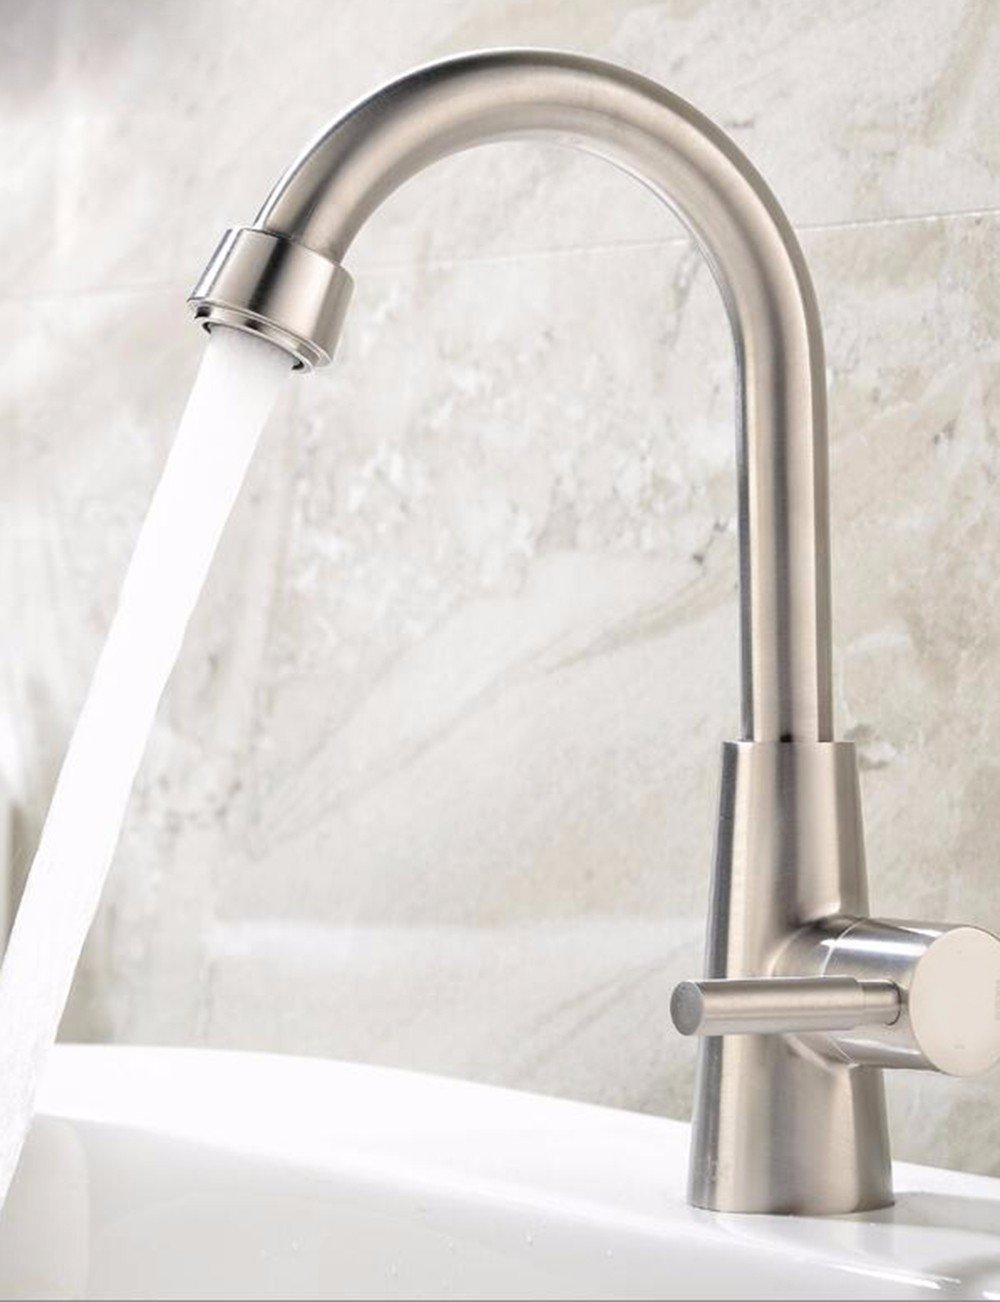 High) Hlluya Professional Sink Mixer Tap Kitchen Faucet Faucet Stainless steel single-basin sink surface basin sink single handle single hole faucet, high